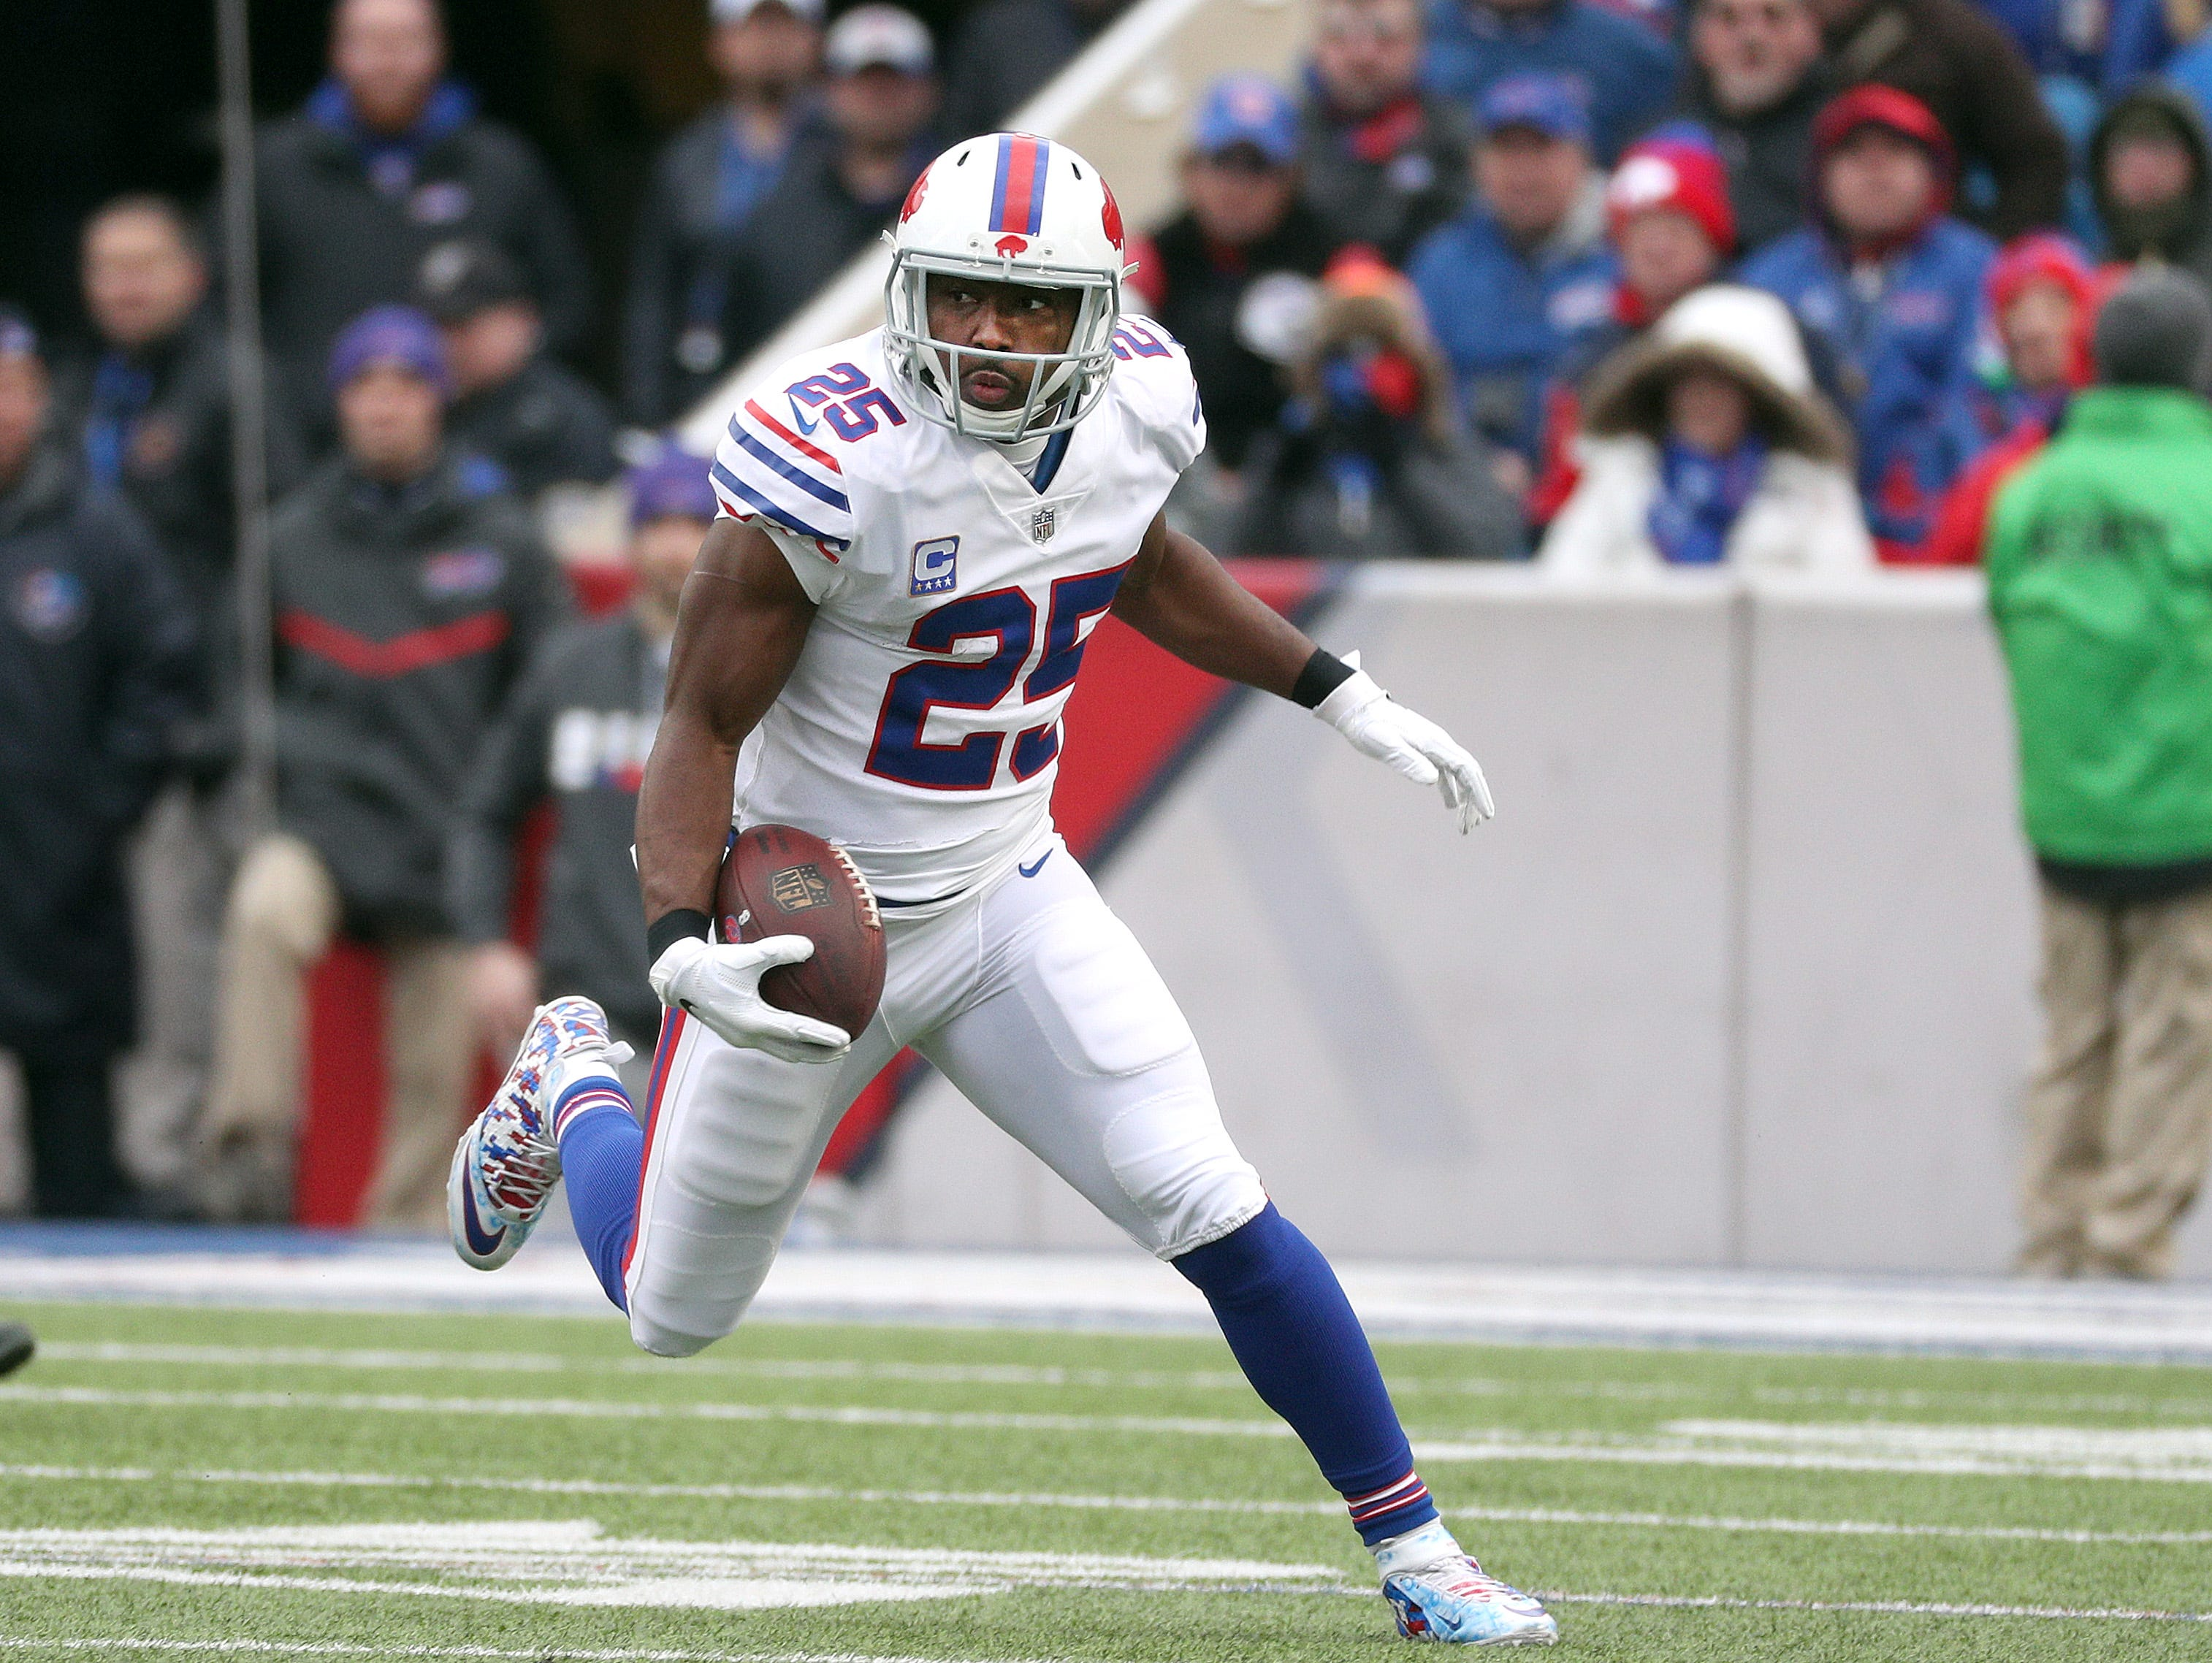 Should the Bills move on from LeSean McCoy in 2019? The answer is yes